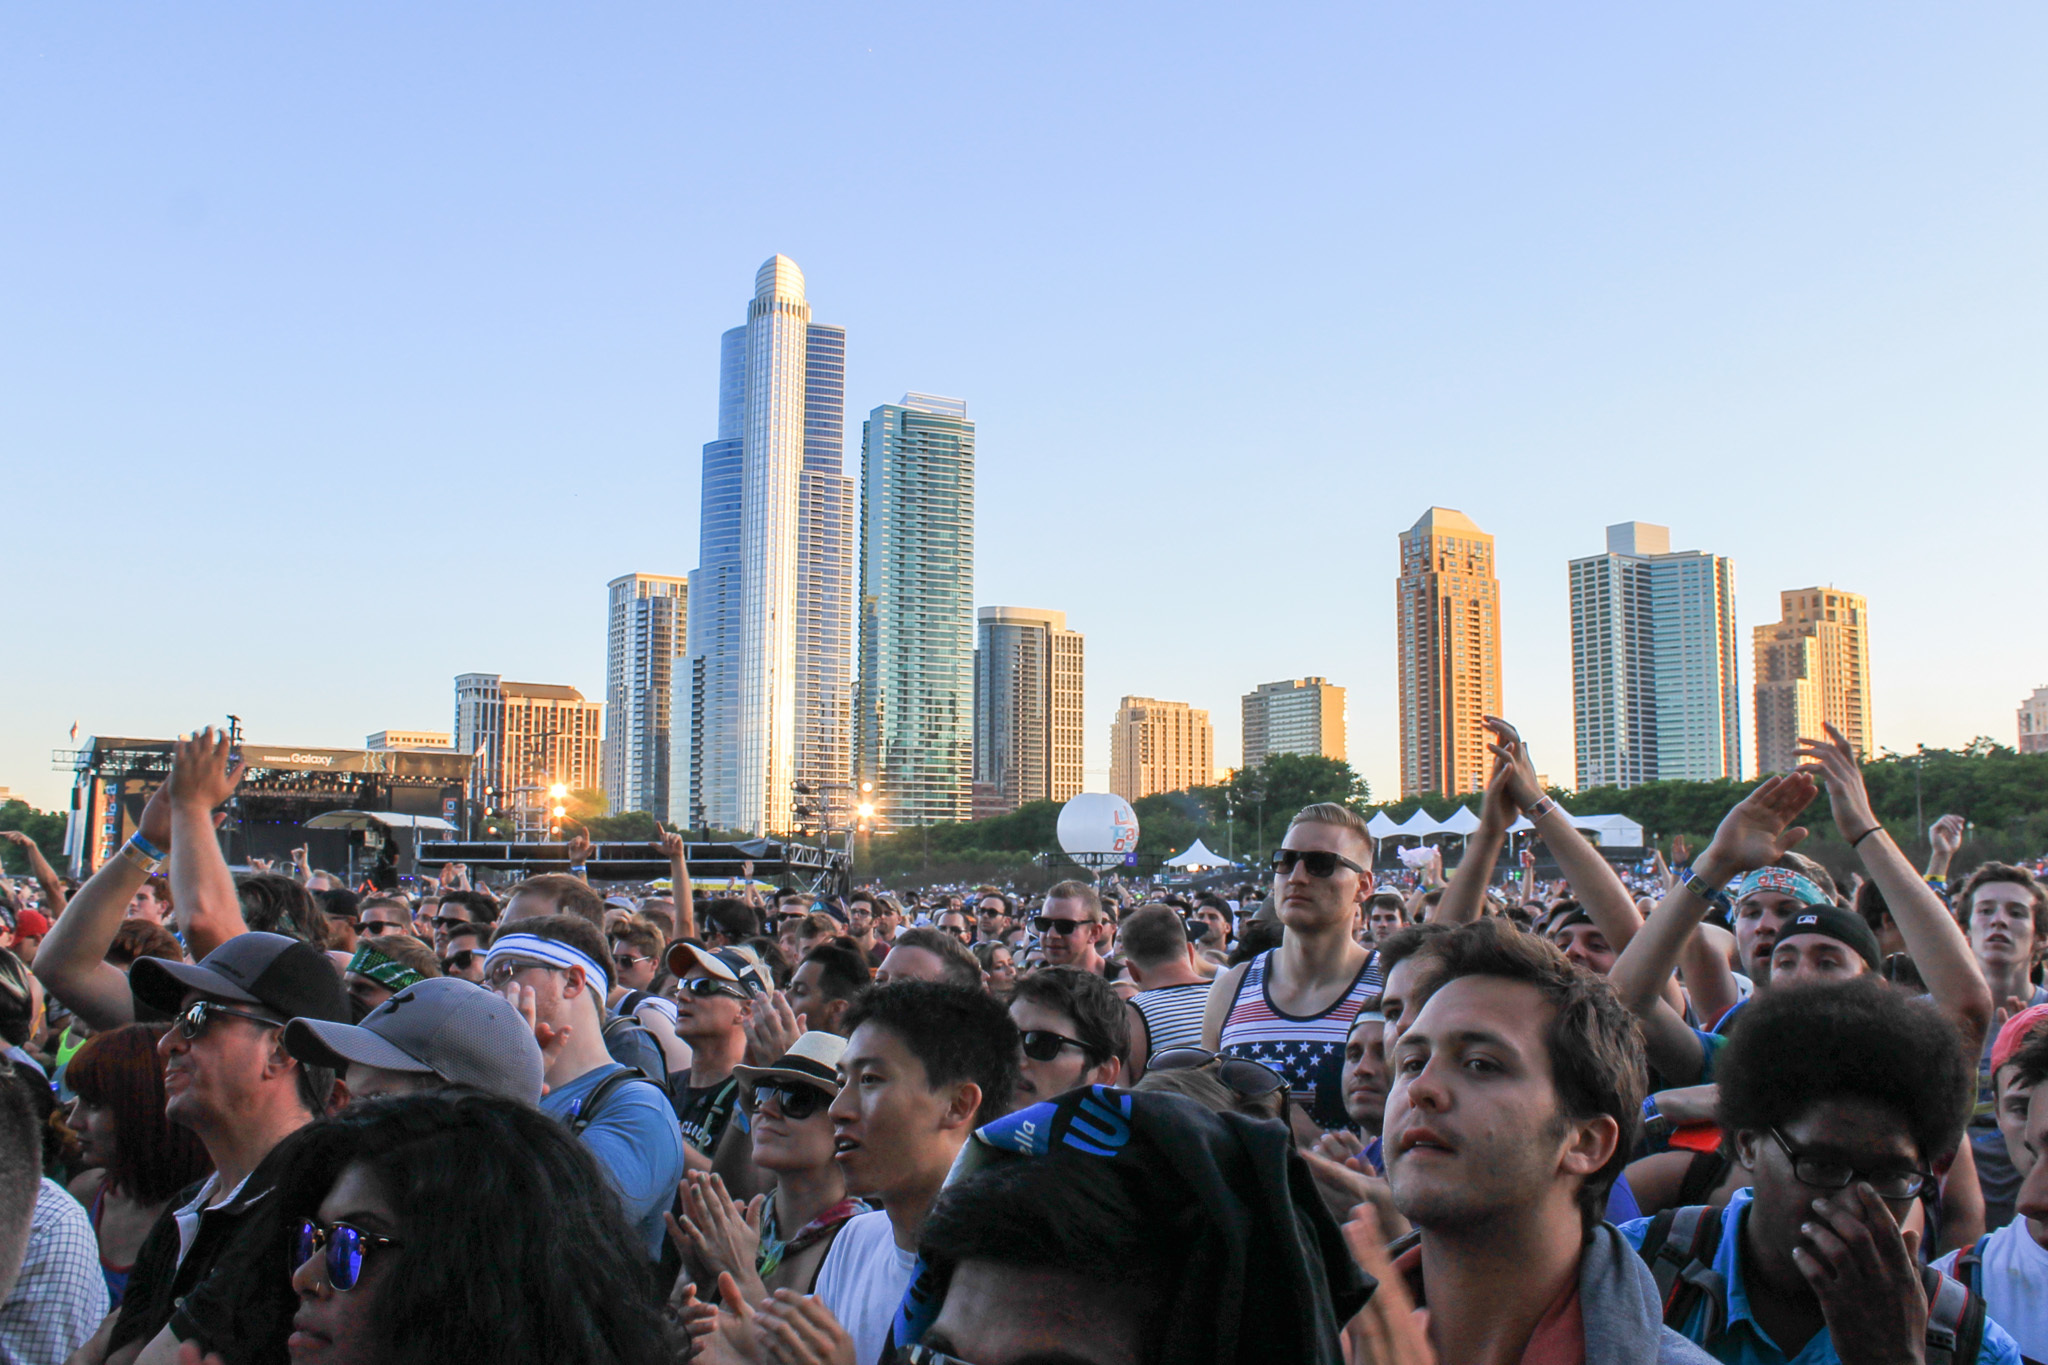 Thousands of attendees crowded into Grant Park to see bands during the first day of Lollapalooza on July 31, 2015.